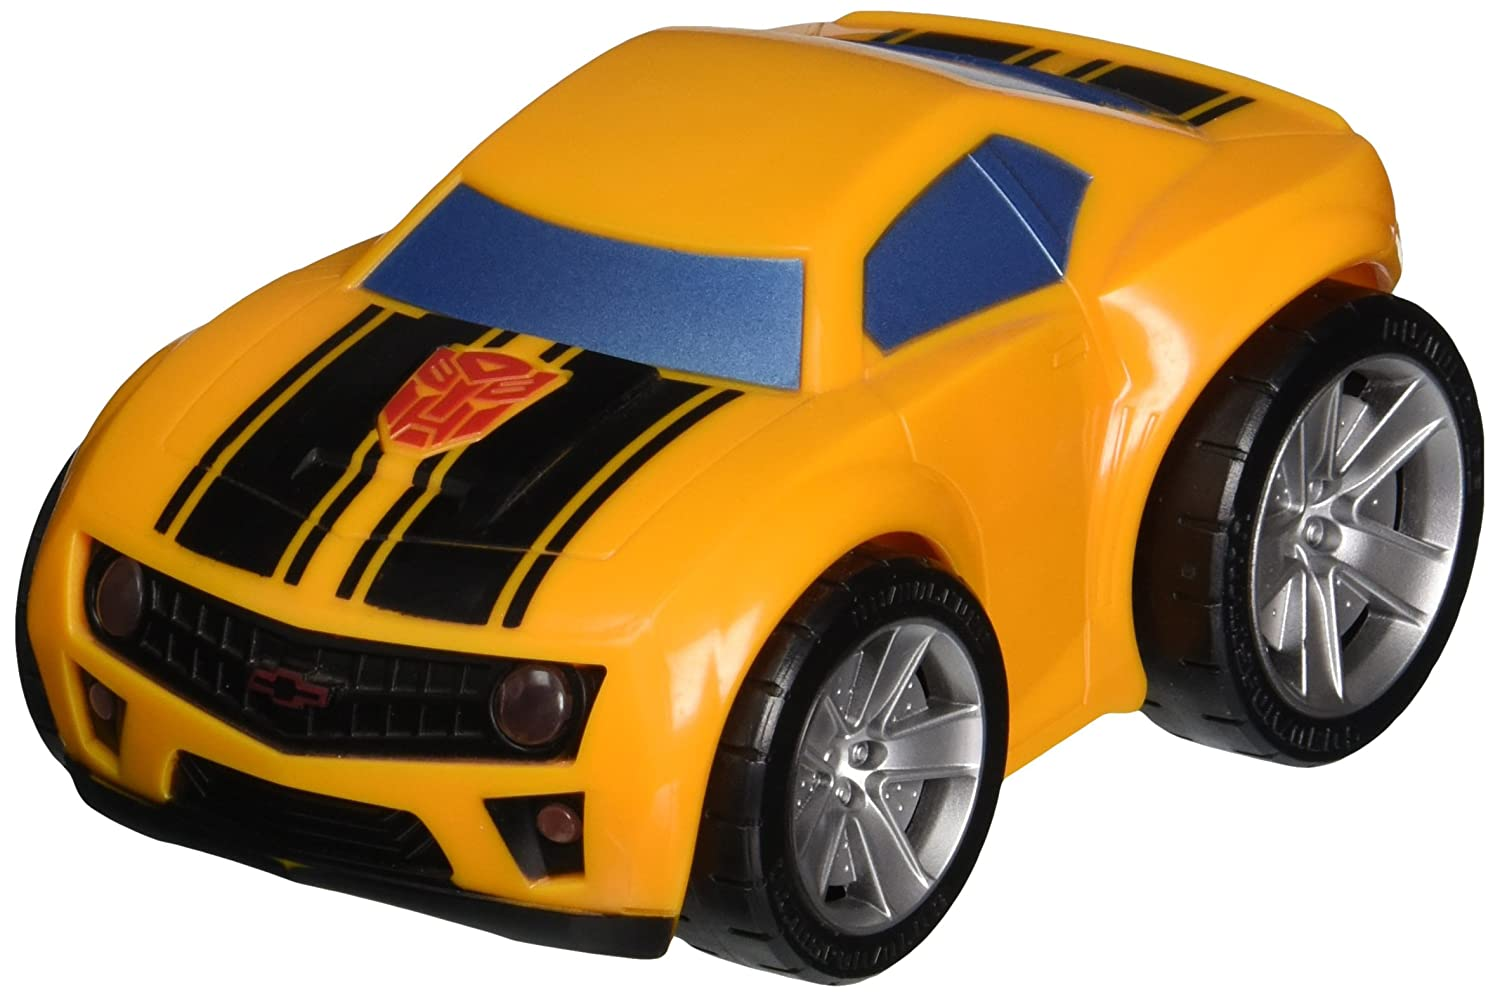 bumblebee transformer toy car images galleries with a bite. Black Bedroom Furniture Sets. Home Design Ideas